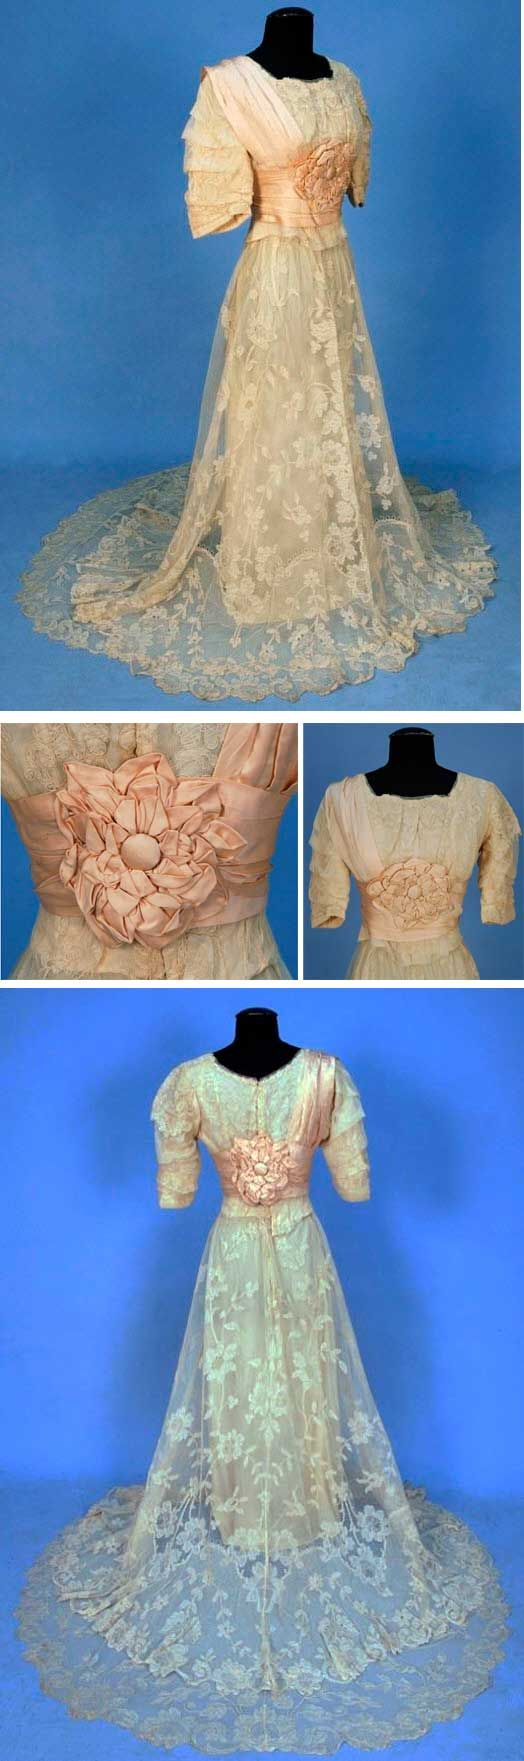 Trained lace gown, ca. 1906. Two-piece re-embroidered lace on net. Boned bodice with pleated short sleeves. Pink silk cummerbund with self flower and shoulder drape. Skirt has deep hem ruffle to train, non-conforming silk under-dress. Charles A. Whitaker Auctions/LiveAuctioneers